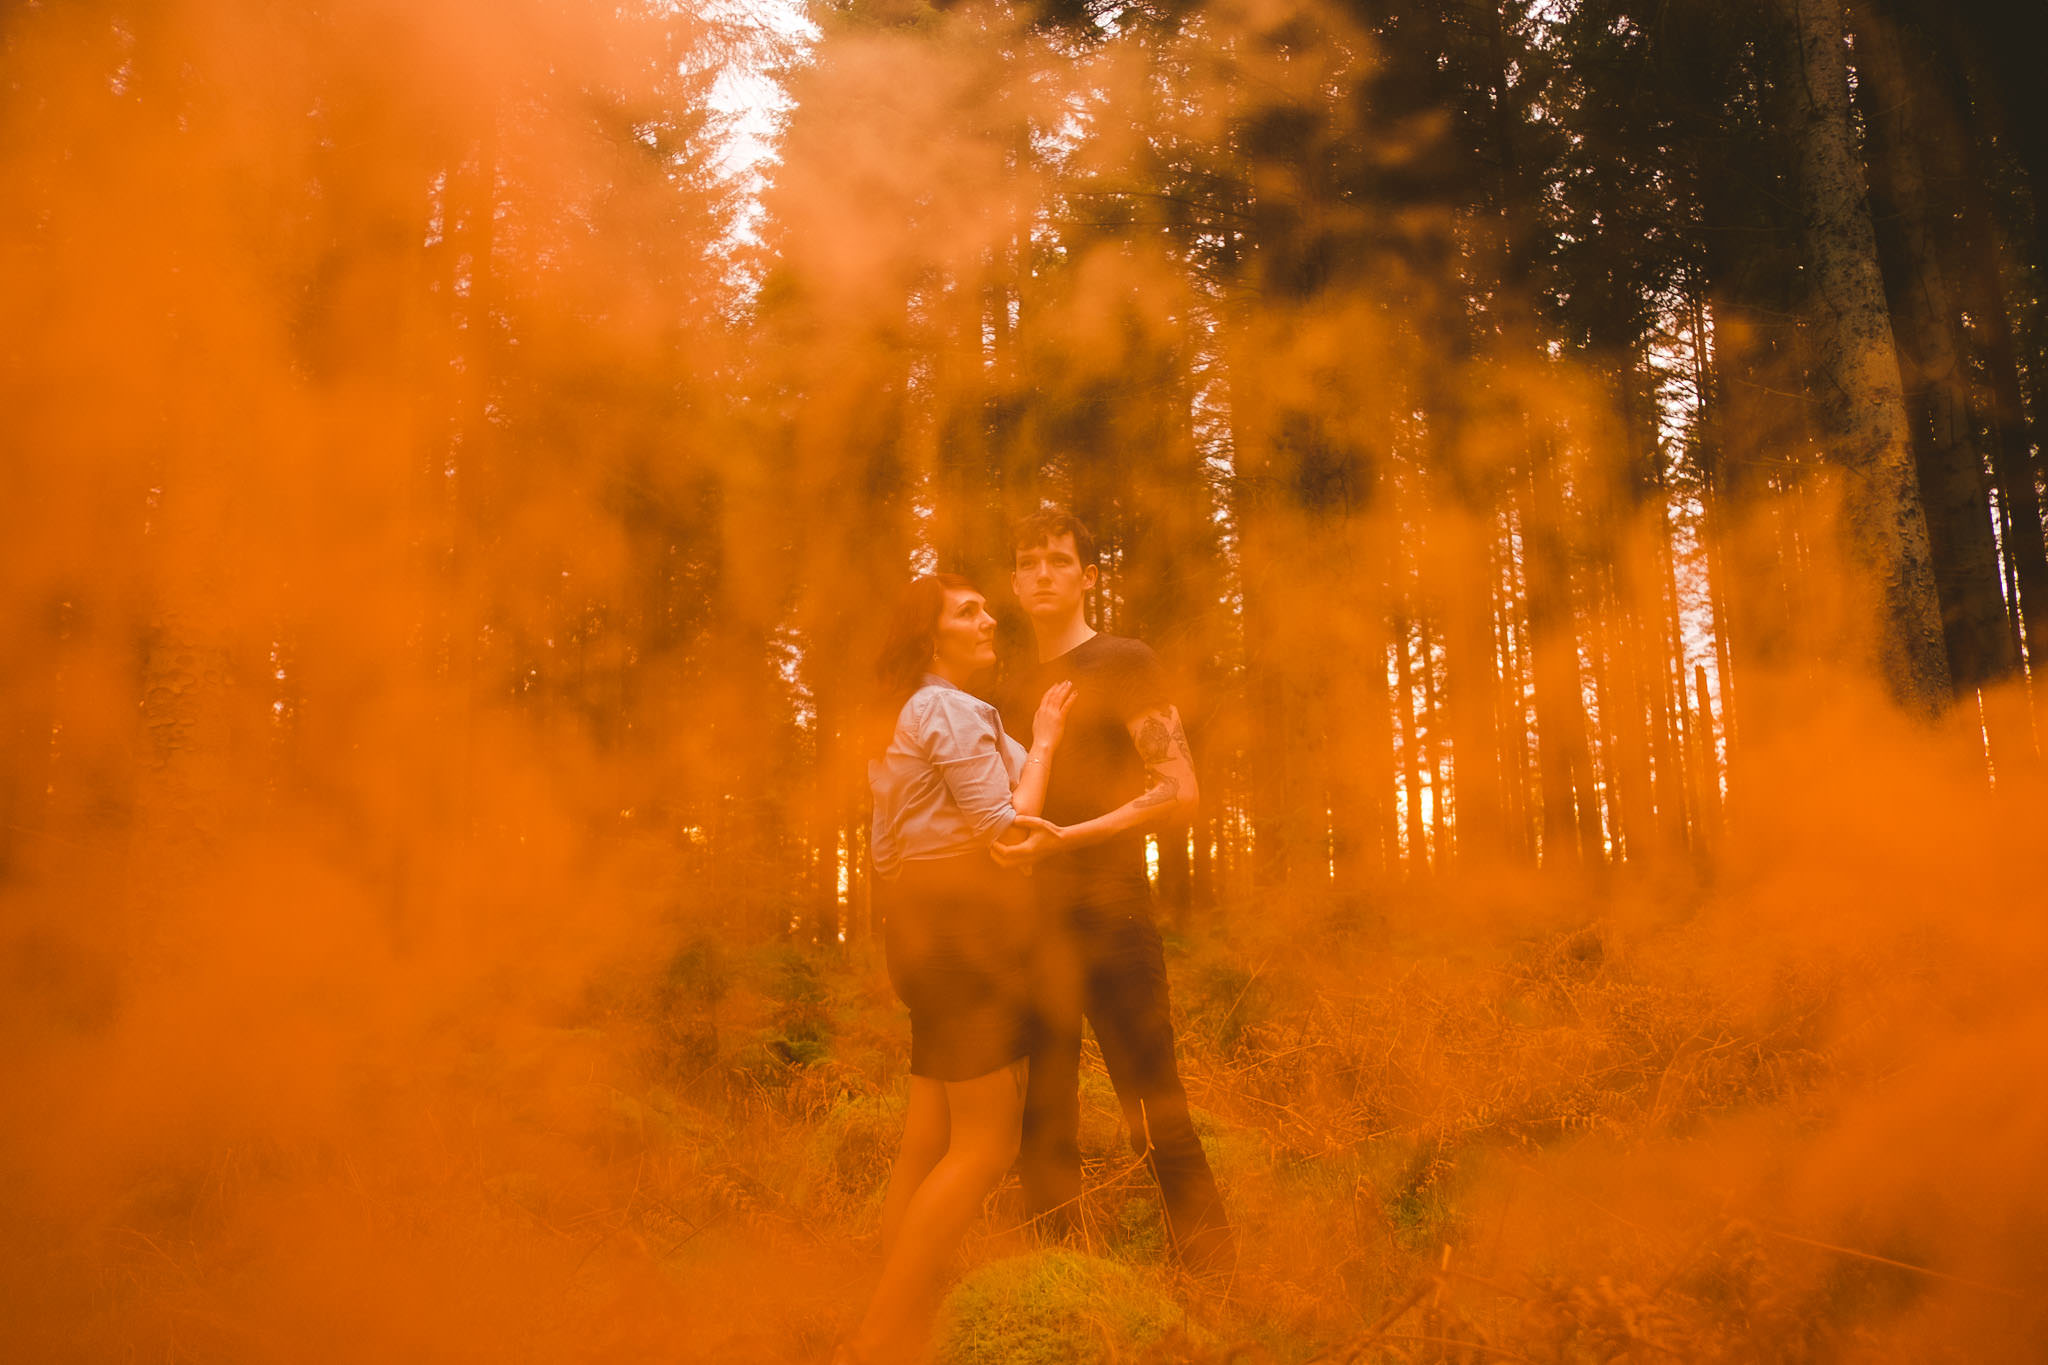 I took Sarah and Billy up to Kielder water and forest park for their shoot. The bright orange was a good contrast for the green woodland but the smoke was too thick in my initial shot.